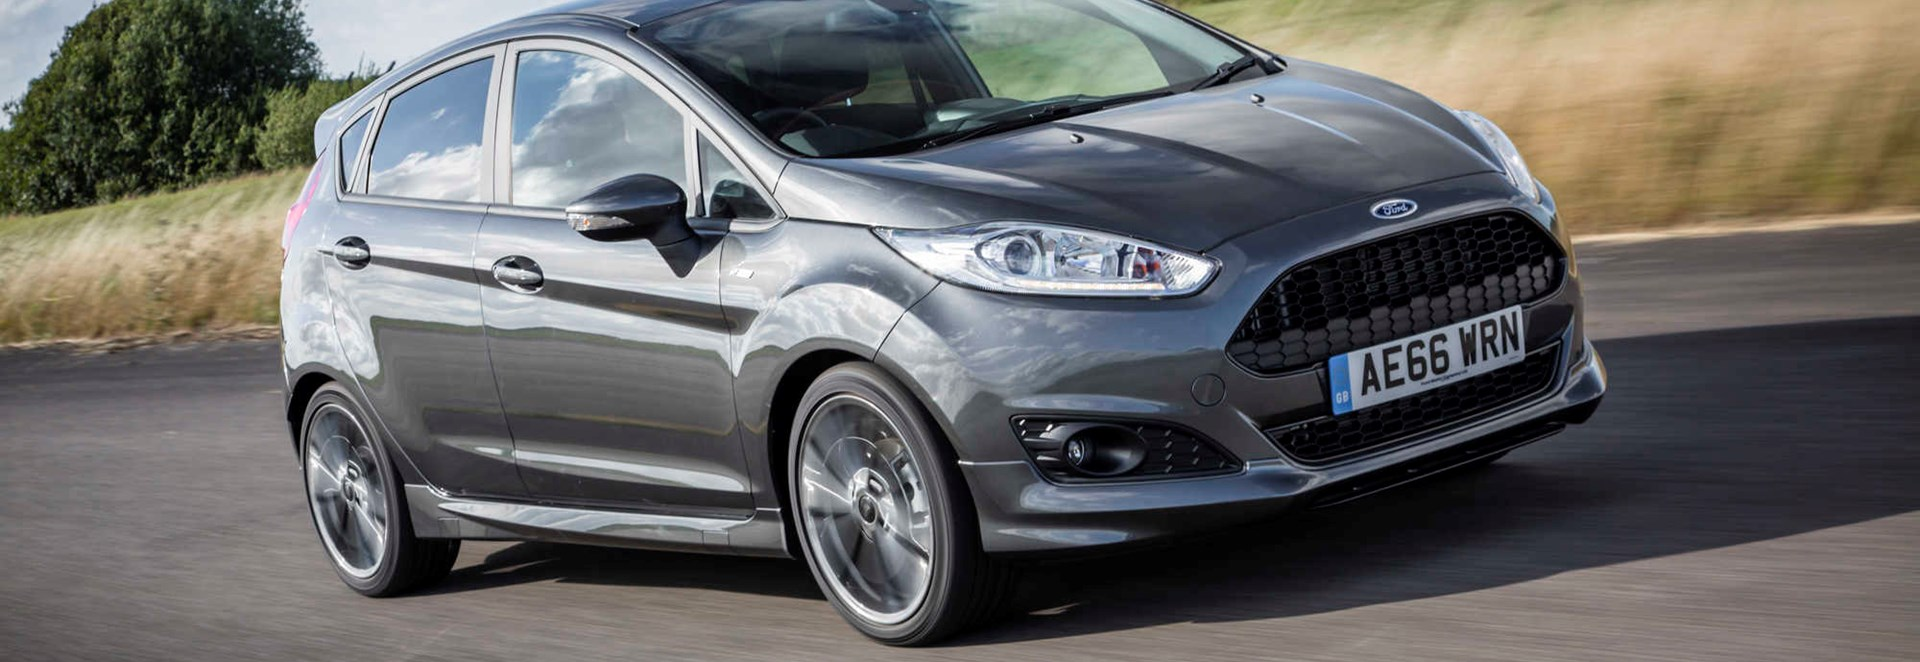 Ford Fiesta St Line   Litre Ecoboost  Review